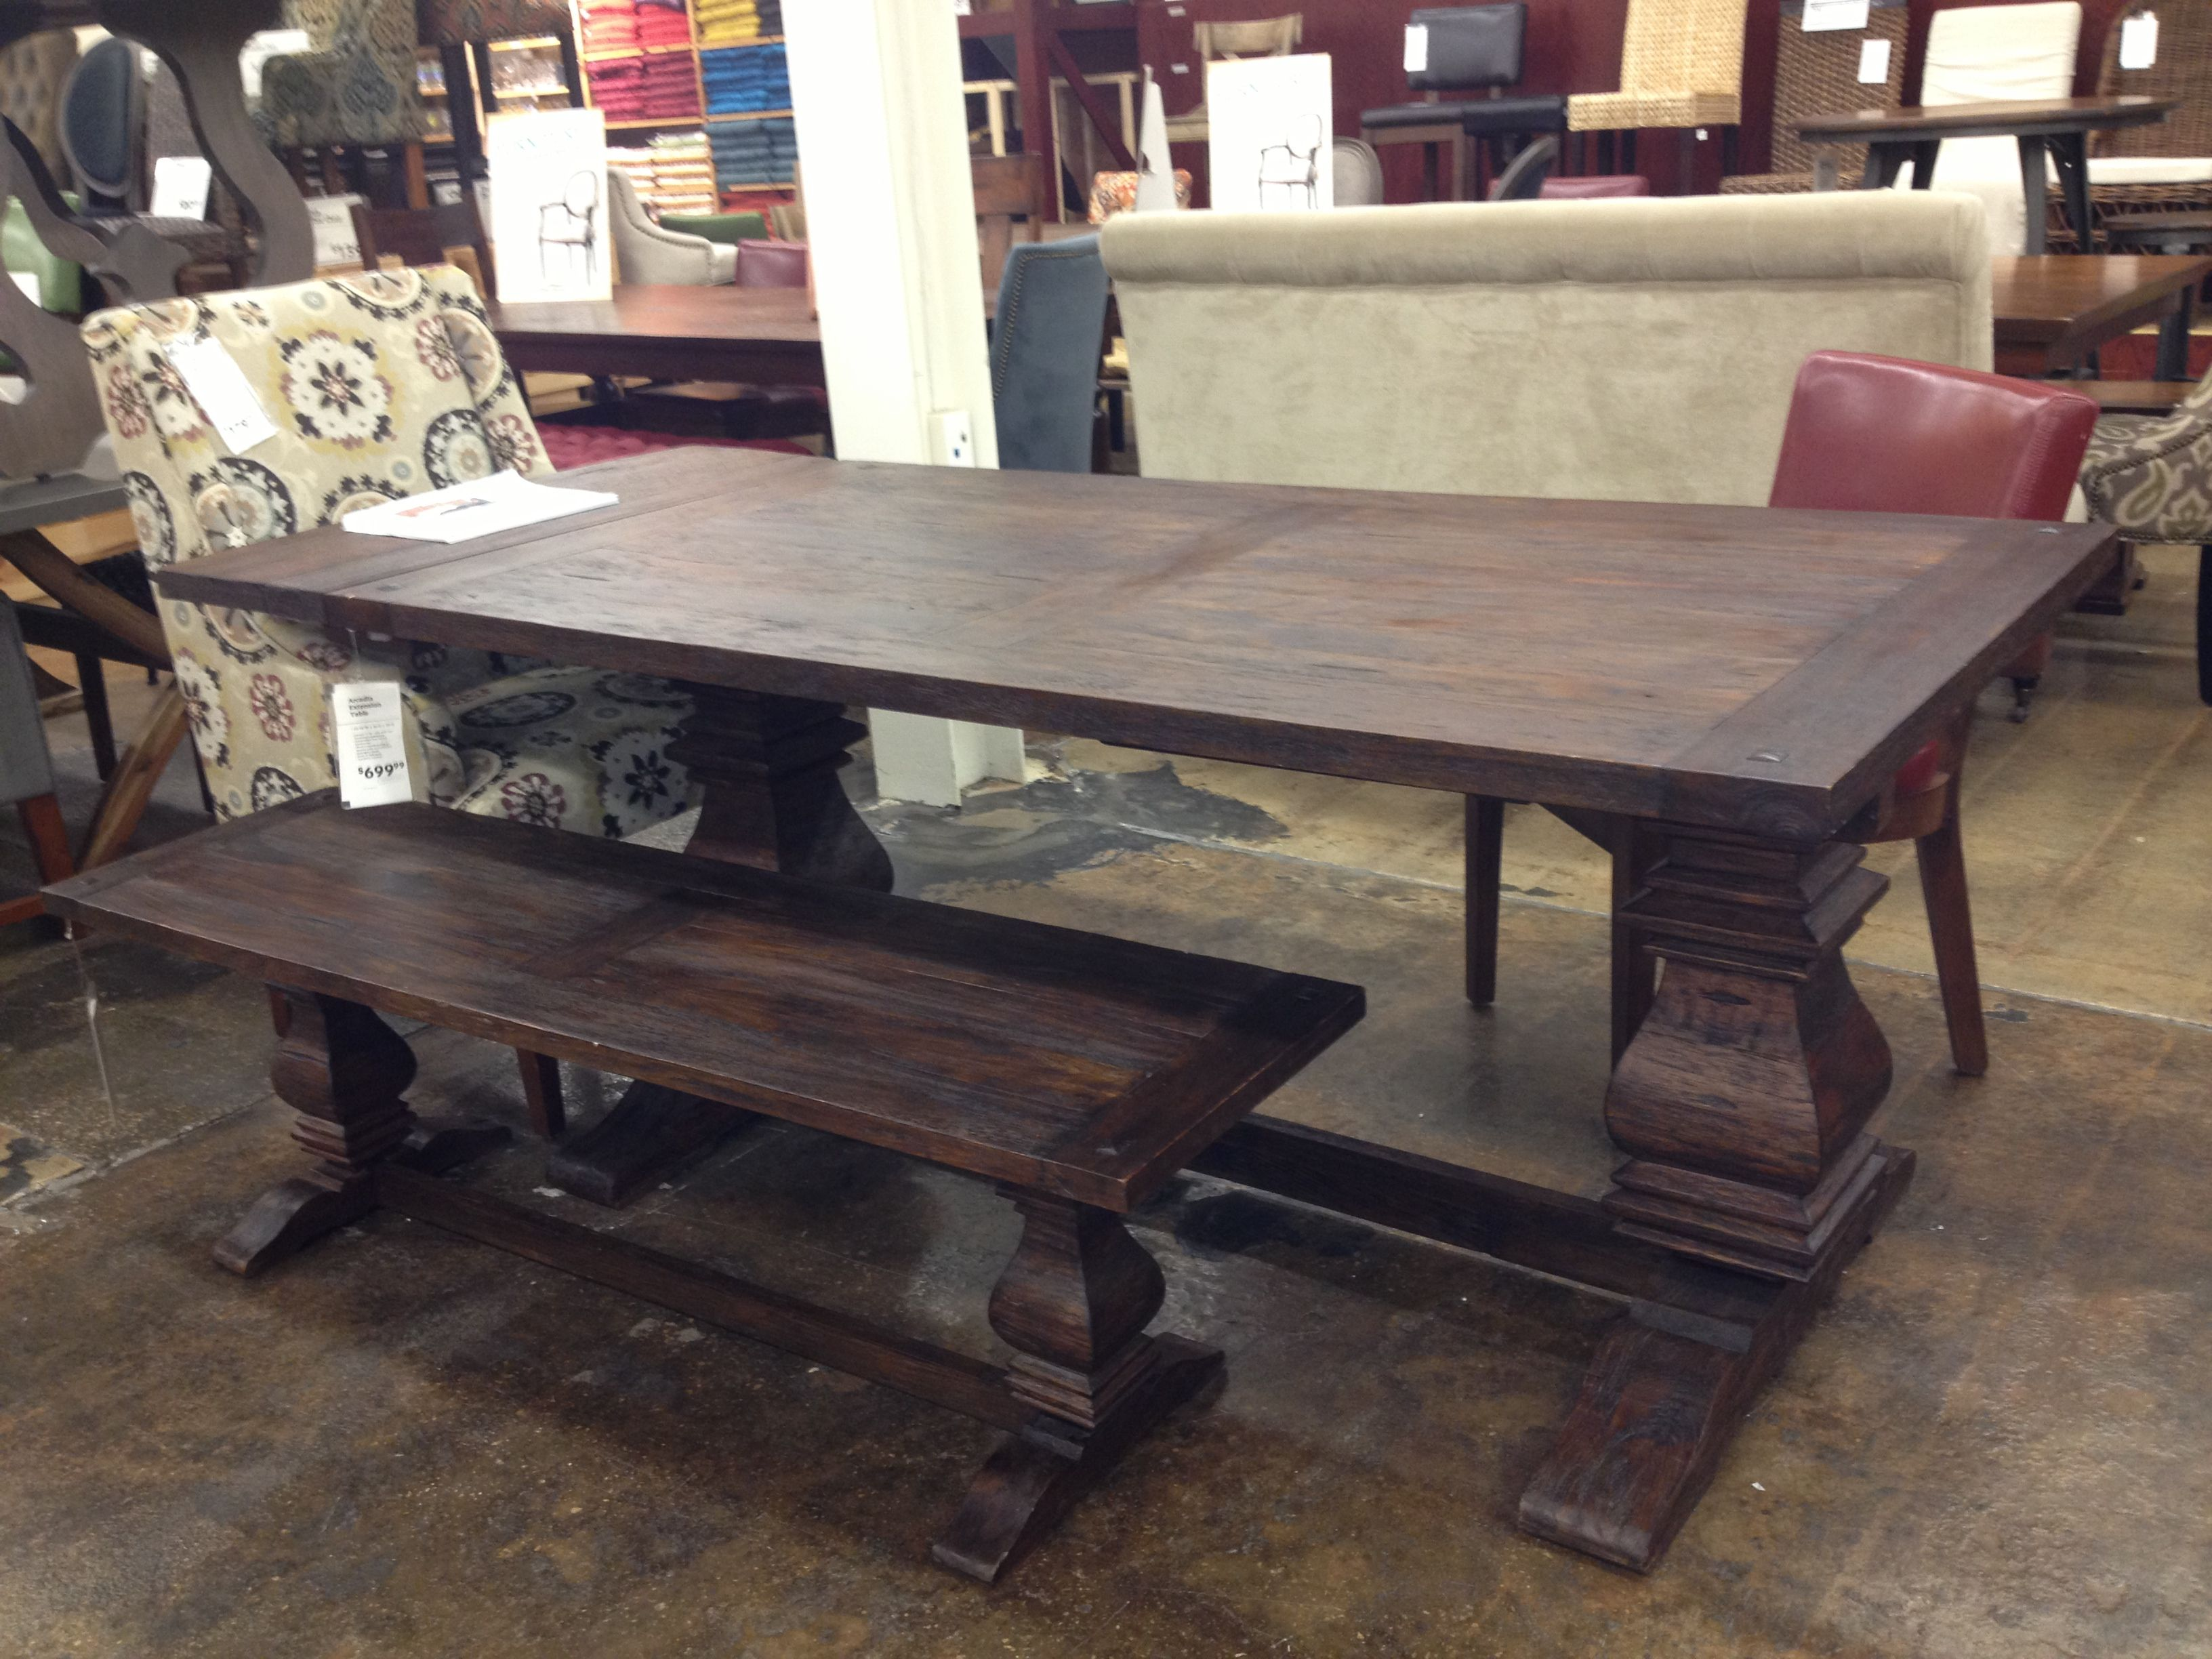 Remarkable Arcadia Extension Table At World Market 60 90 Long 36D Ncnpc Chair Design For Home Ncnpcorg